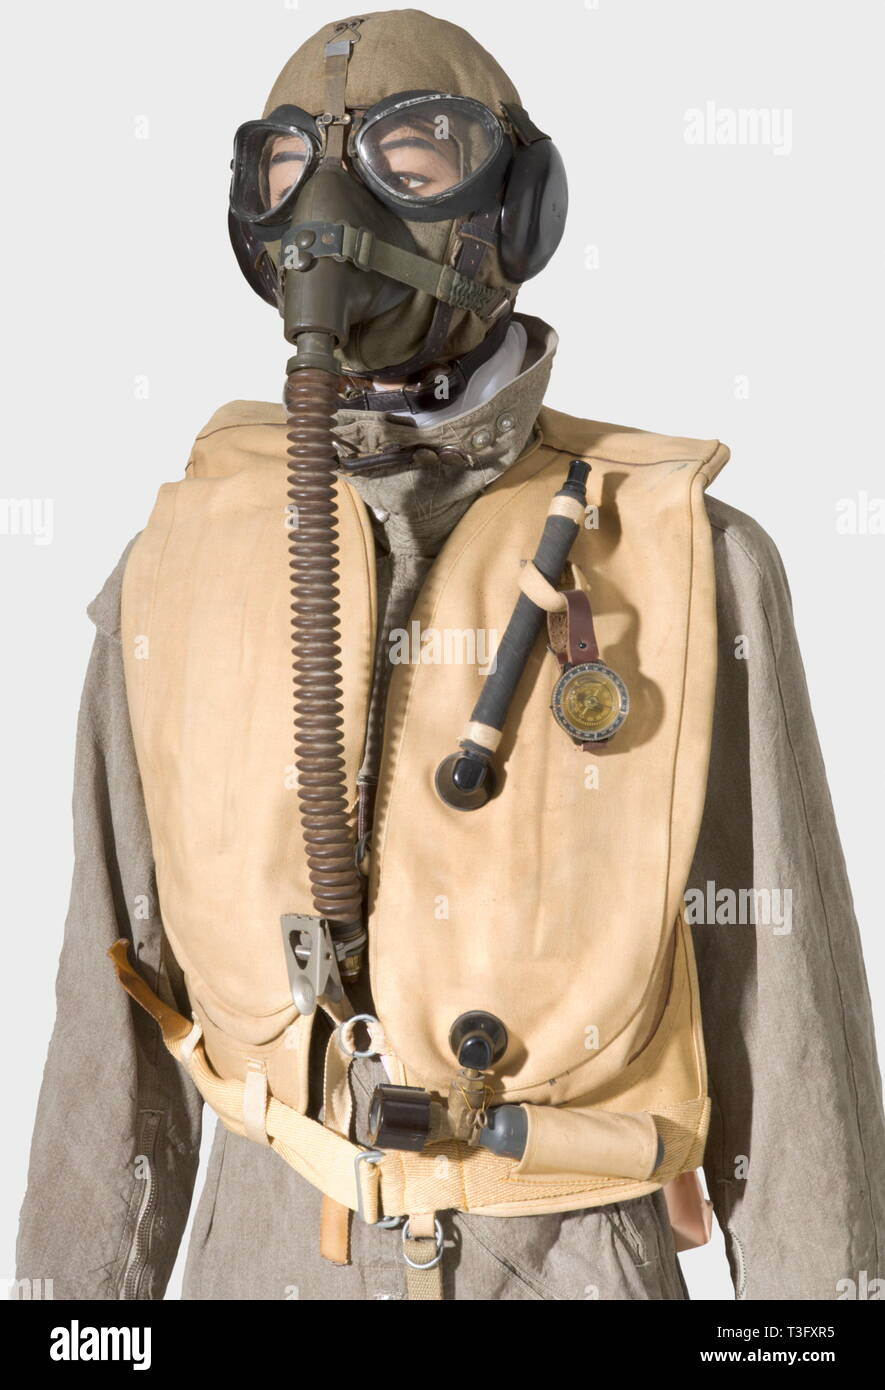 medium resolution of a pilot s uniform ensemble during the aerial bombing of england 1940 44 a